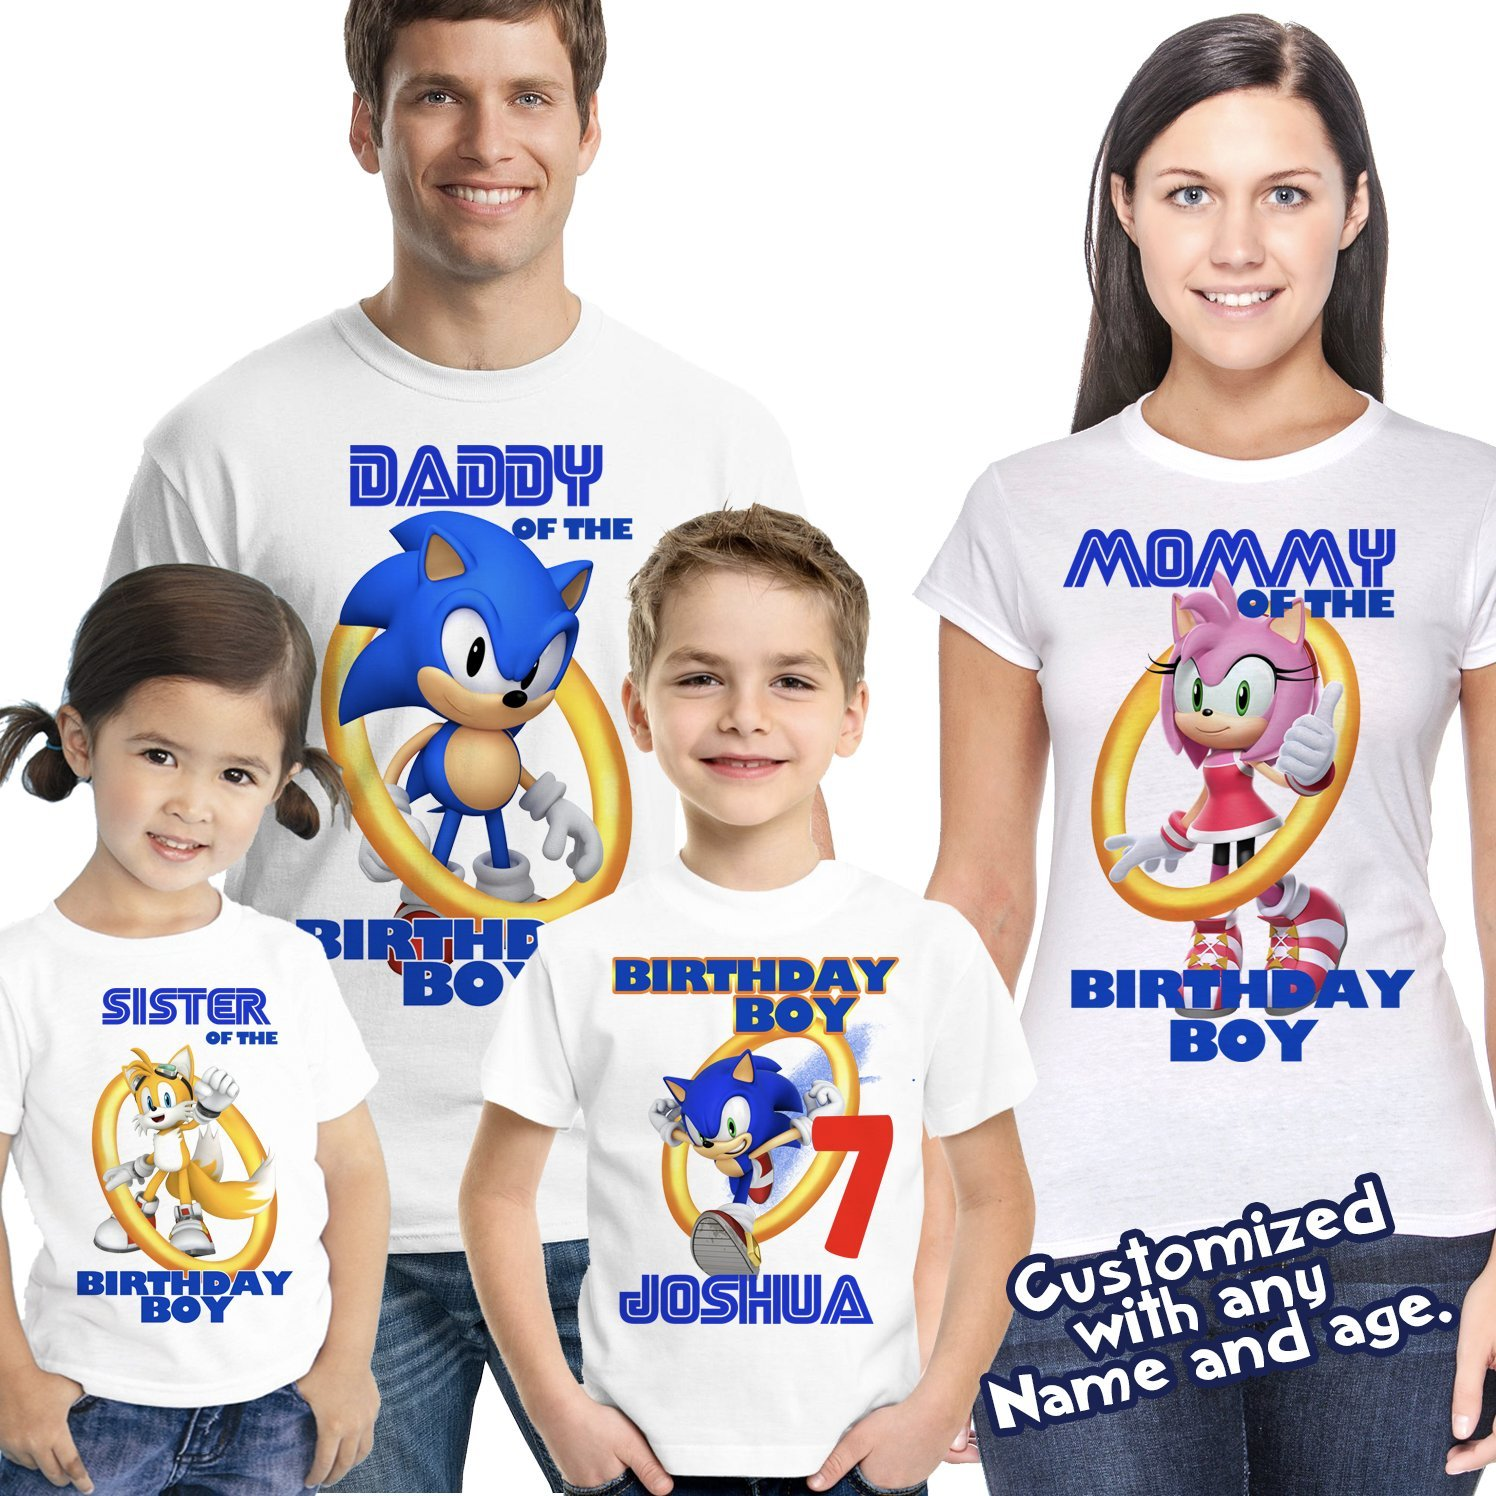 Sonic Birthday Shirt, Sonic the Hedgehog Birthday, Custom Sonic Shirts for Family, Personalized shirts, Sonic party